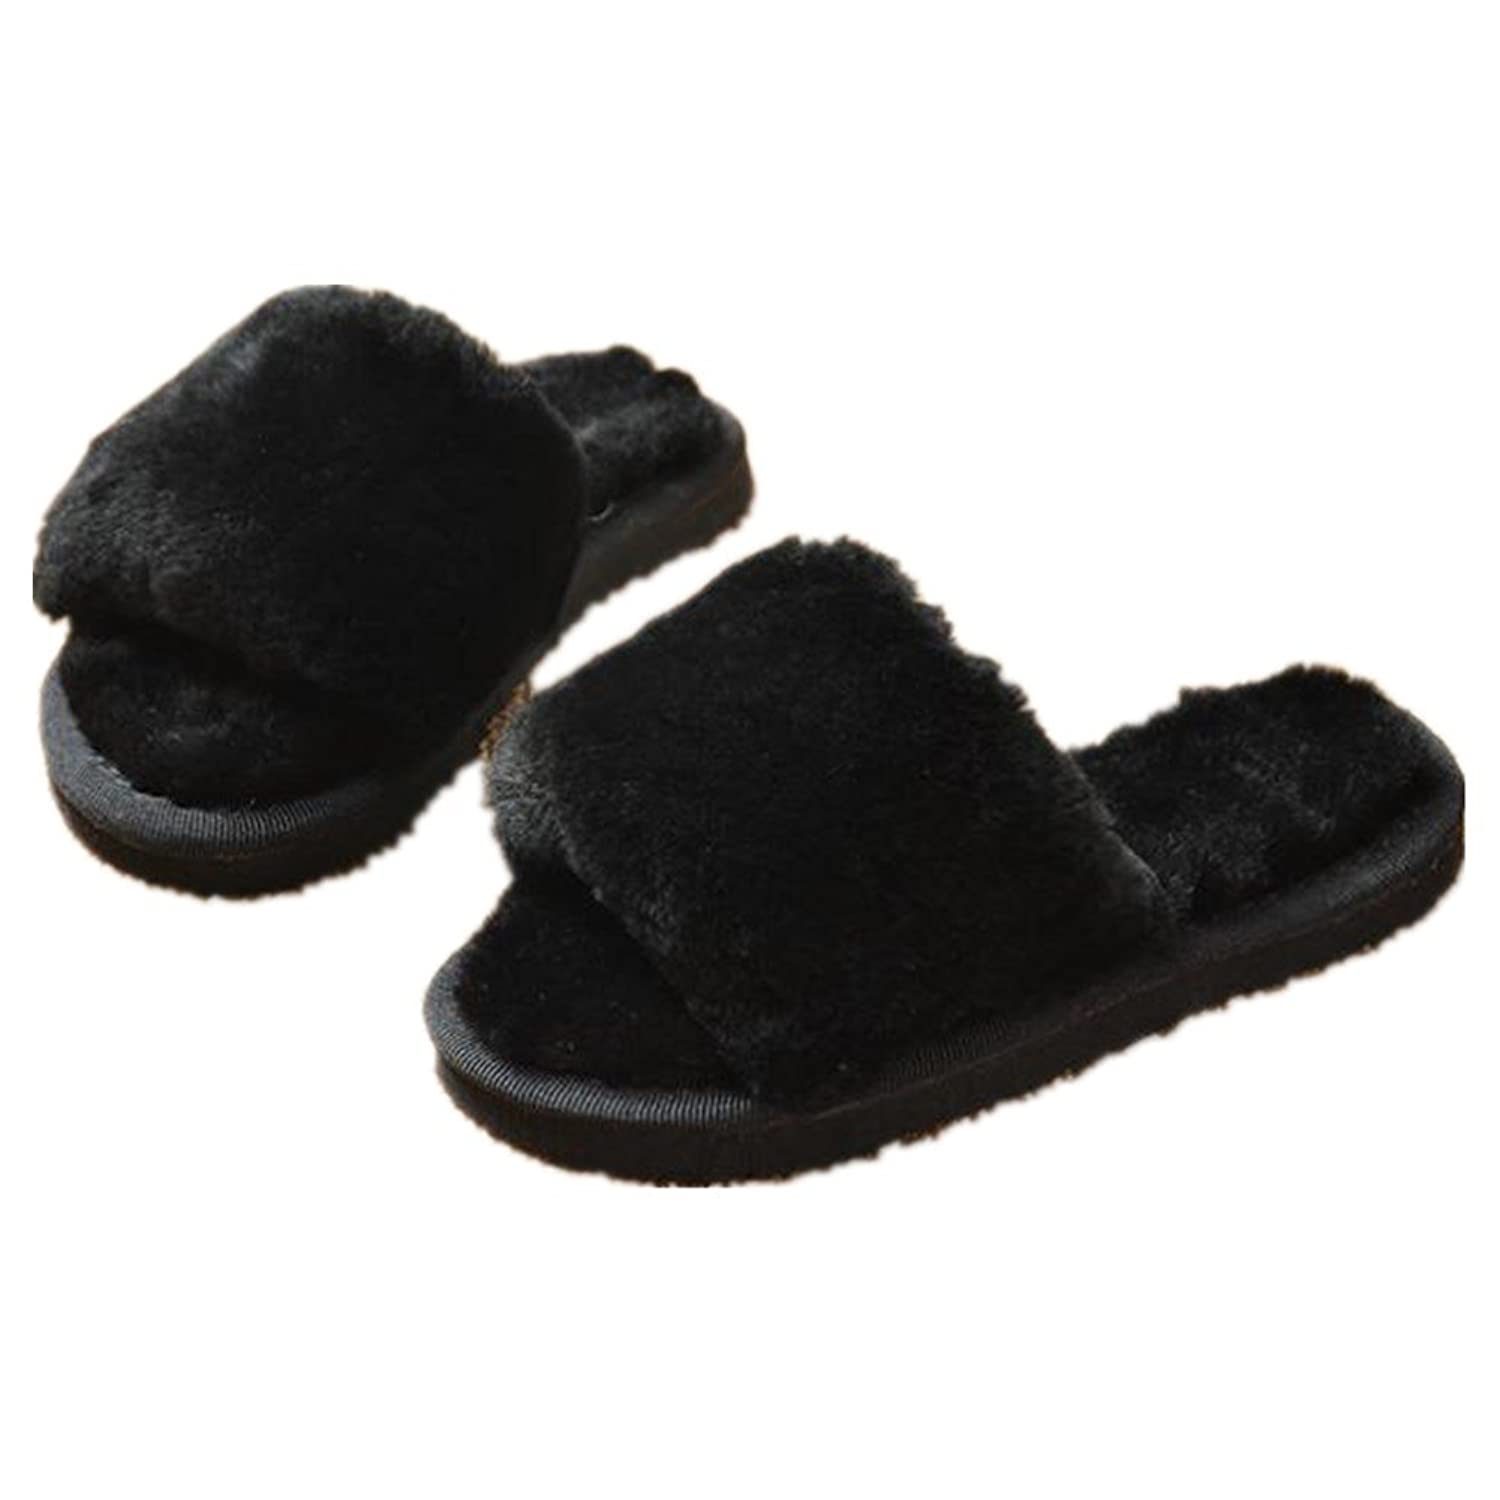 Aksautoparts Anti-slip Indoor Outdoor Slippers Winter Thick Home Warmth Thickened Cotton Slippers